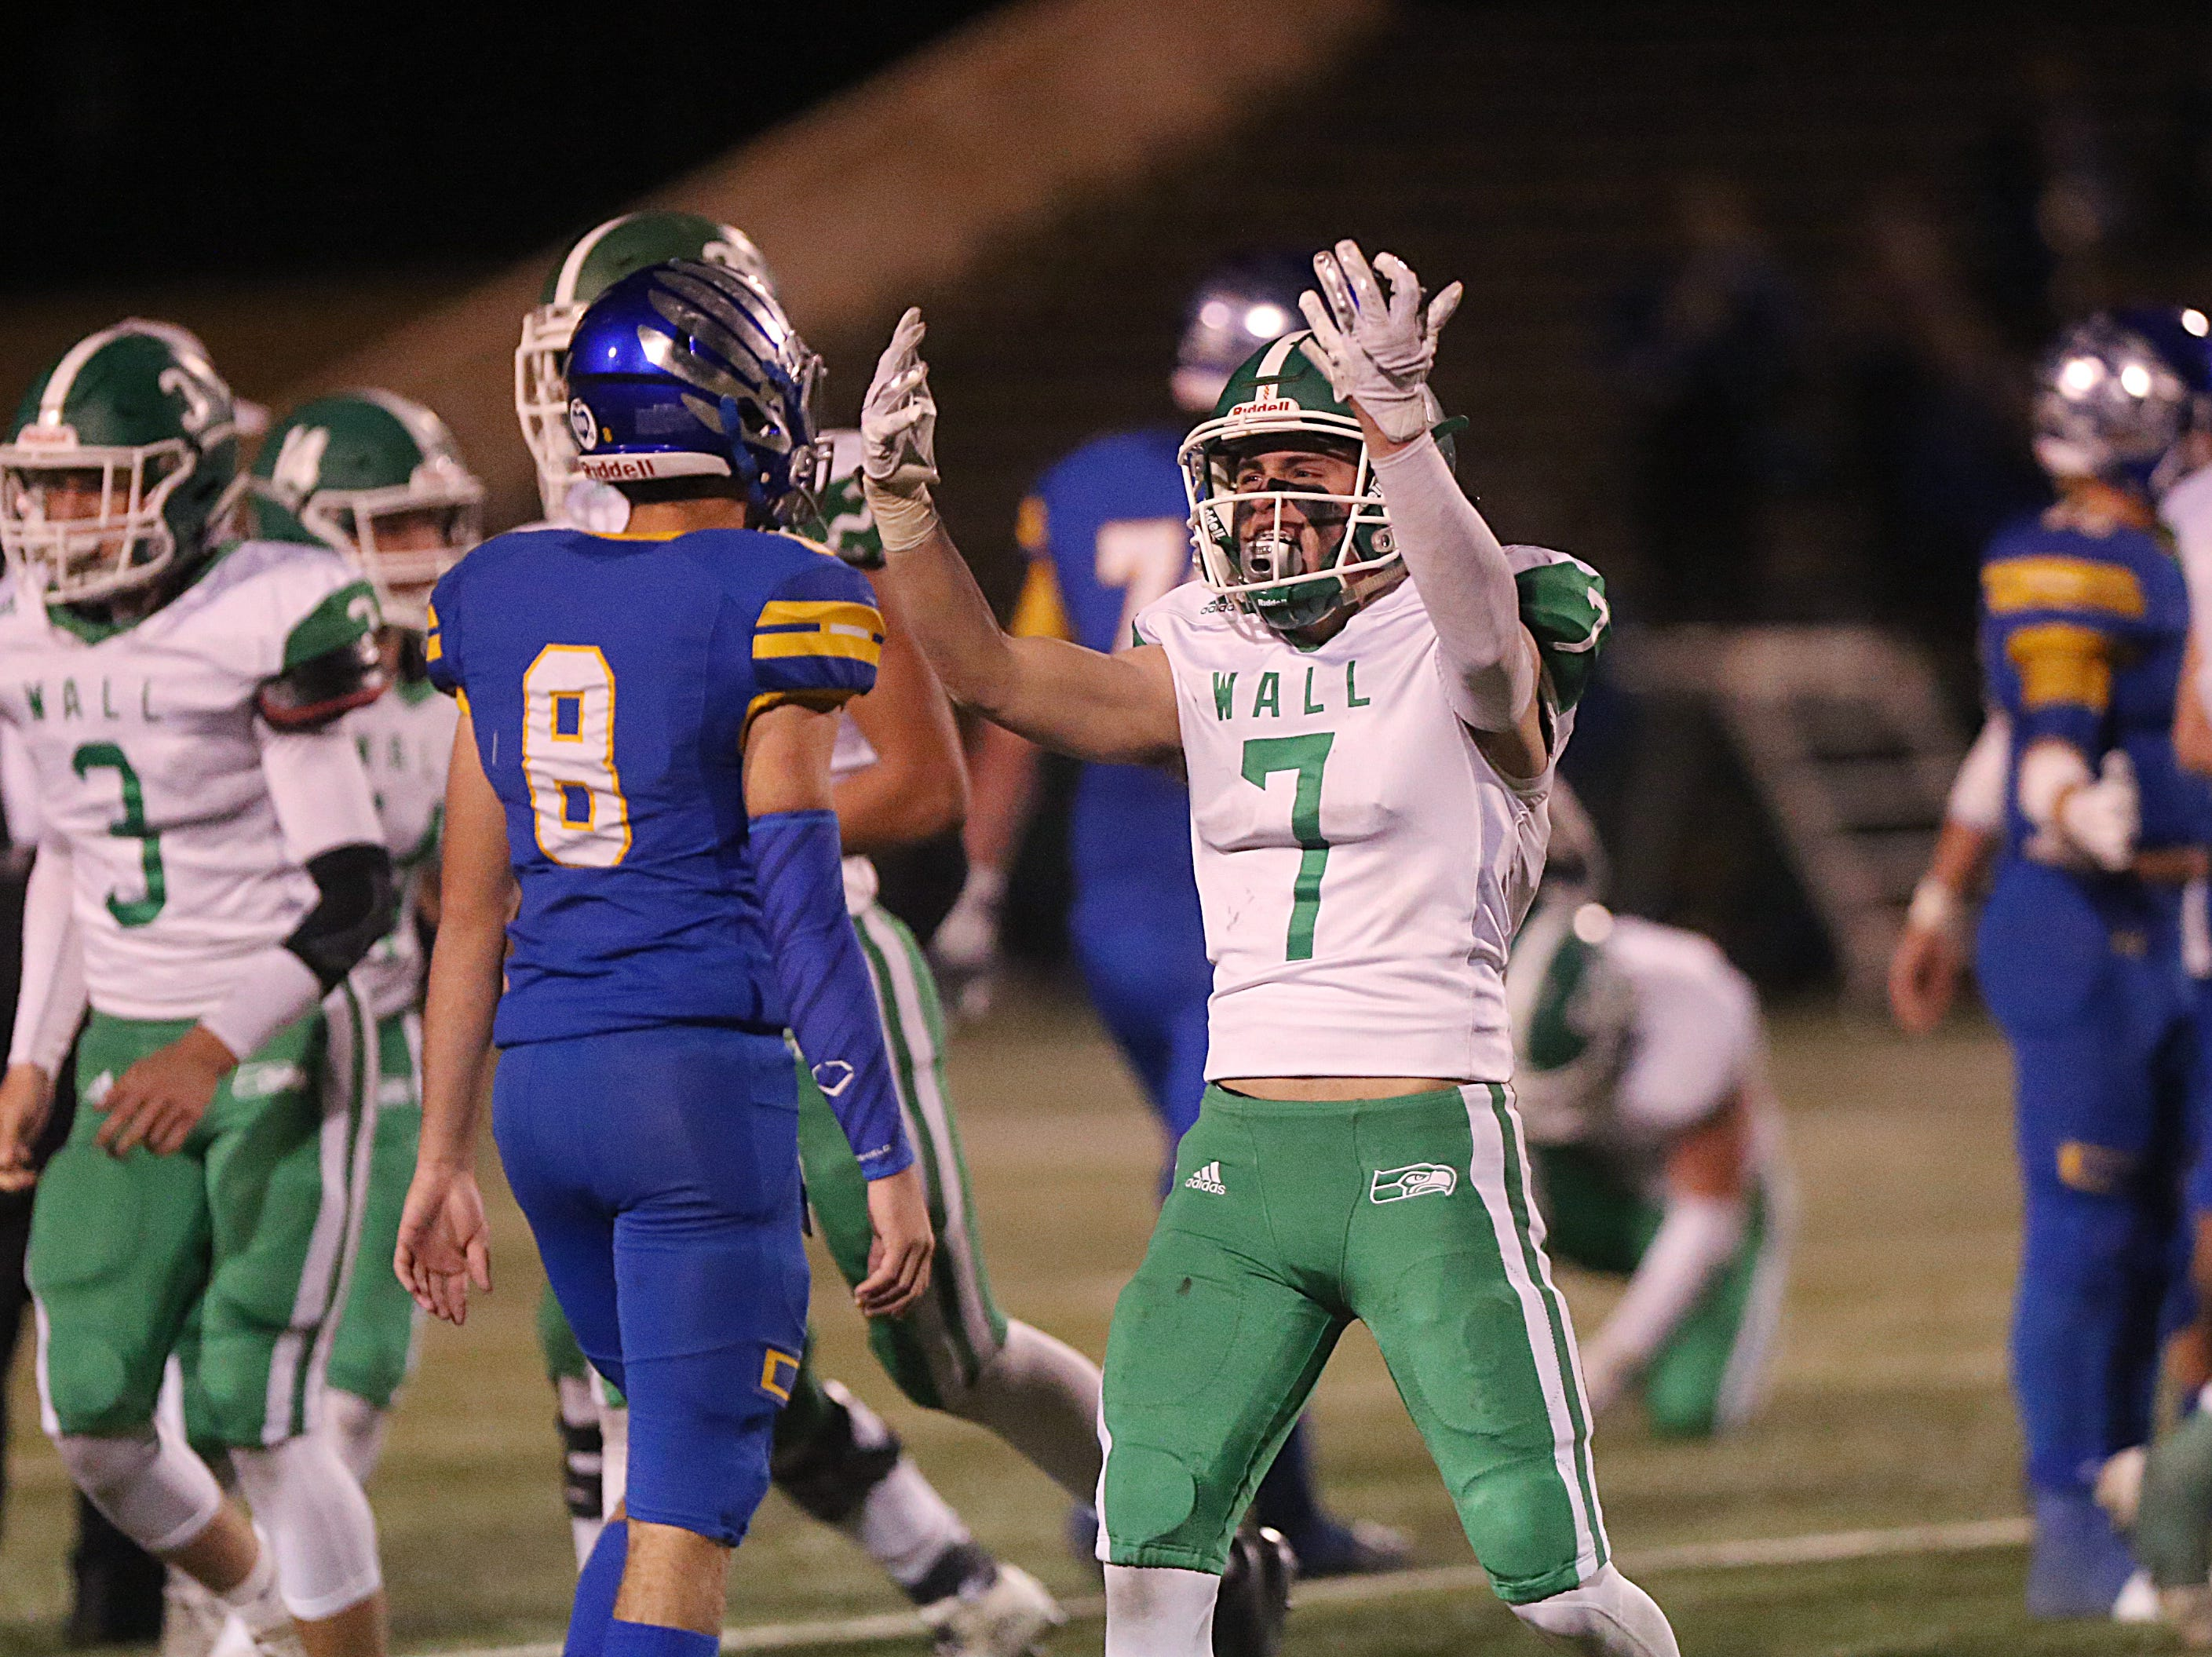 Wall's Austin Gray (#7) pumps up the crowd Friday, Nov. 30, 2018, during their game against the Brock Eagles at Shotwell Stadium in Abilene. Wall lost 13 to 35.